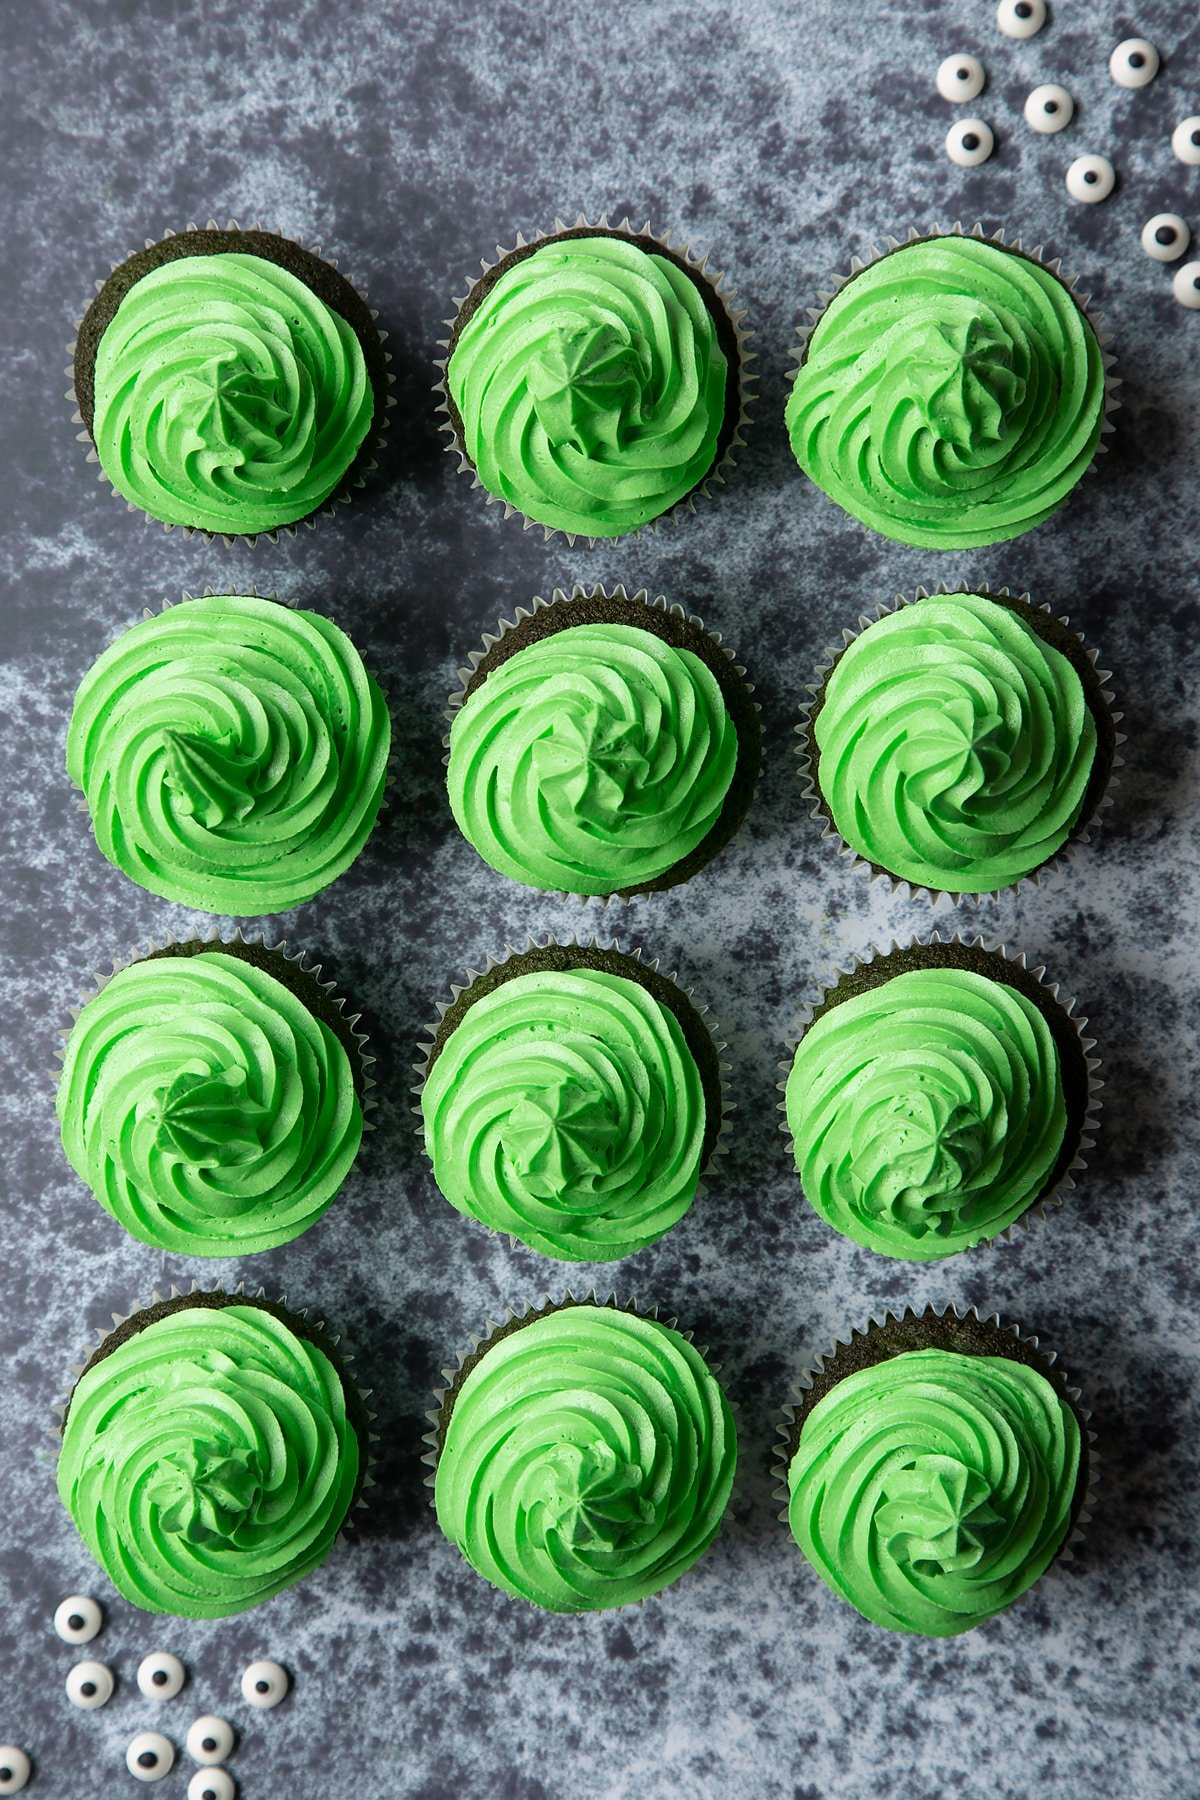 Green vanilla chocolate chip cupcakes decorated with swirls of green peppermint frosting.